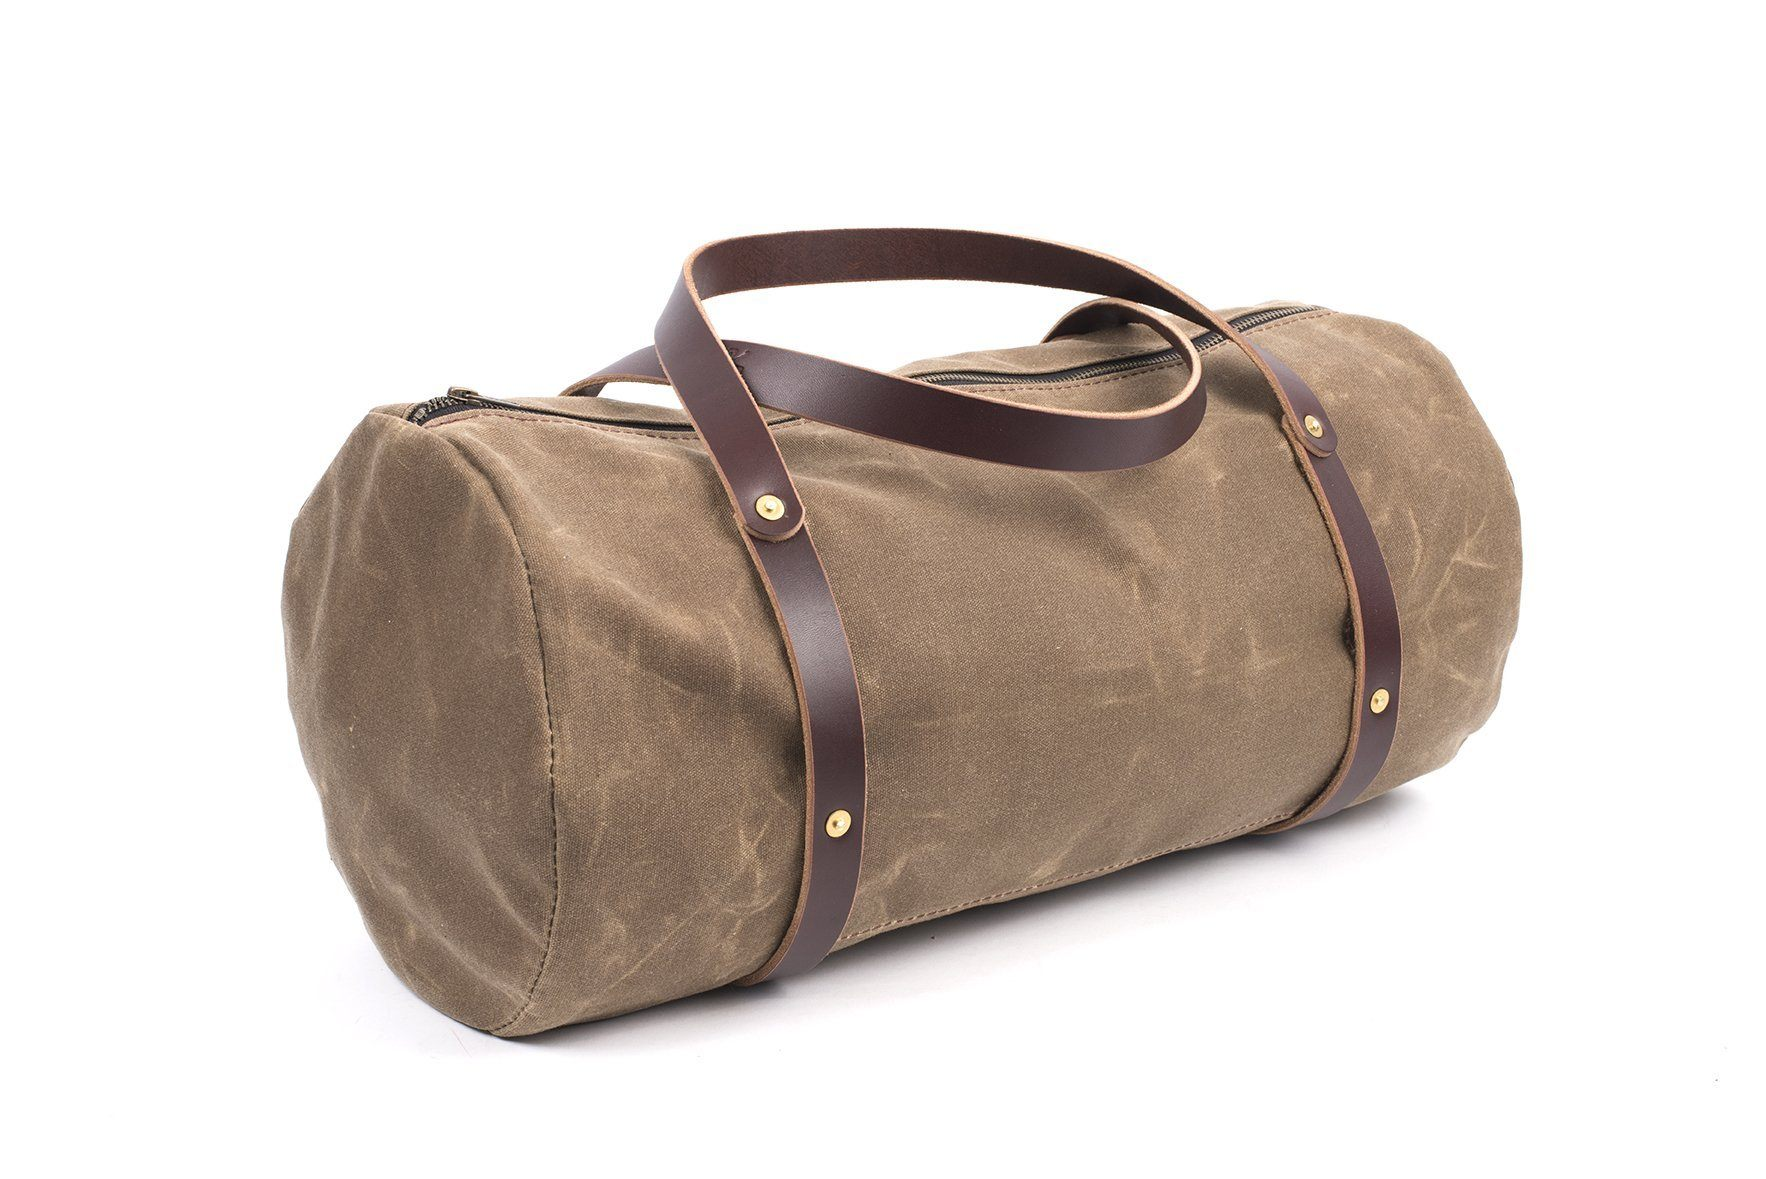 7408208478a3 WILLIAM WAXED CANVAS WEEKENDER DUFFLE BAG - Go Forth Goods